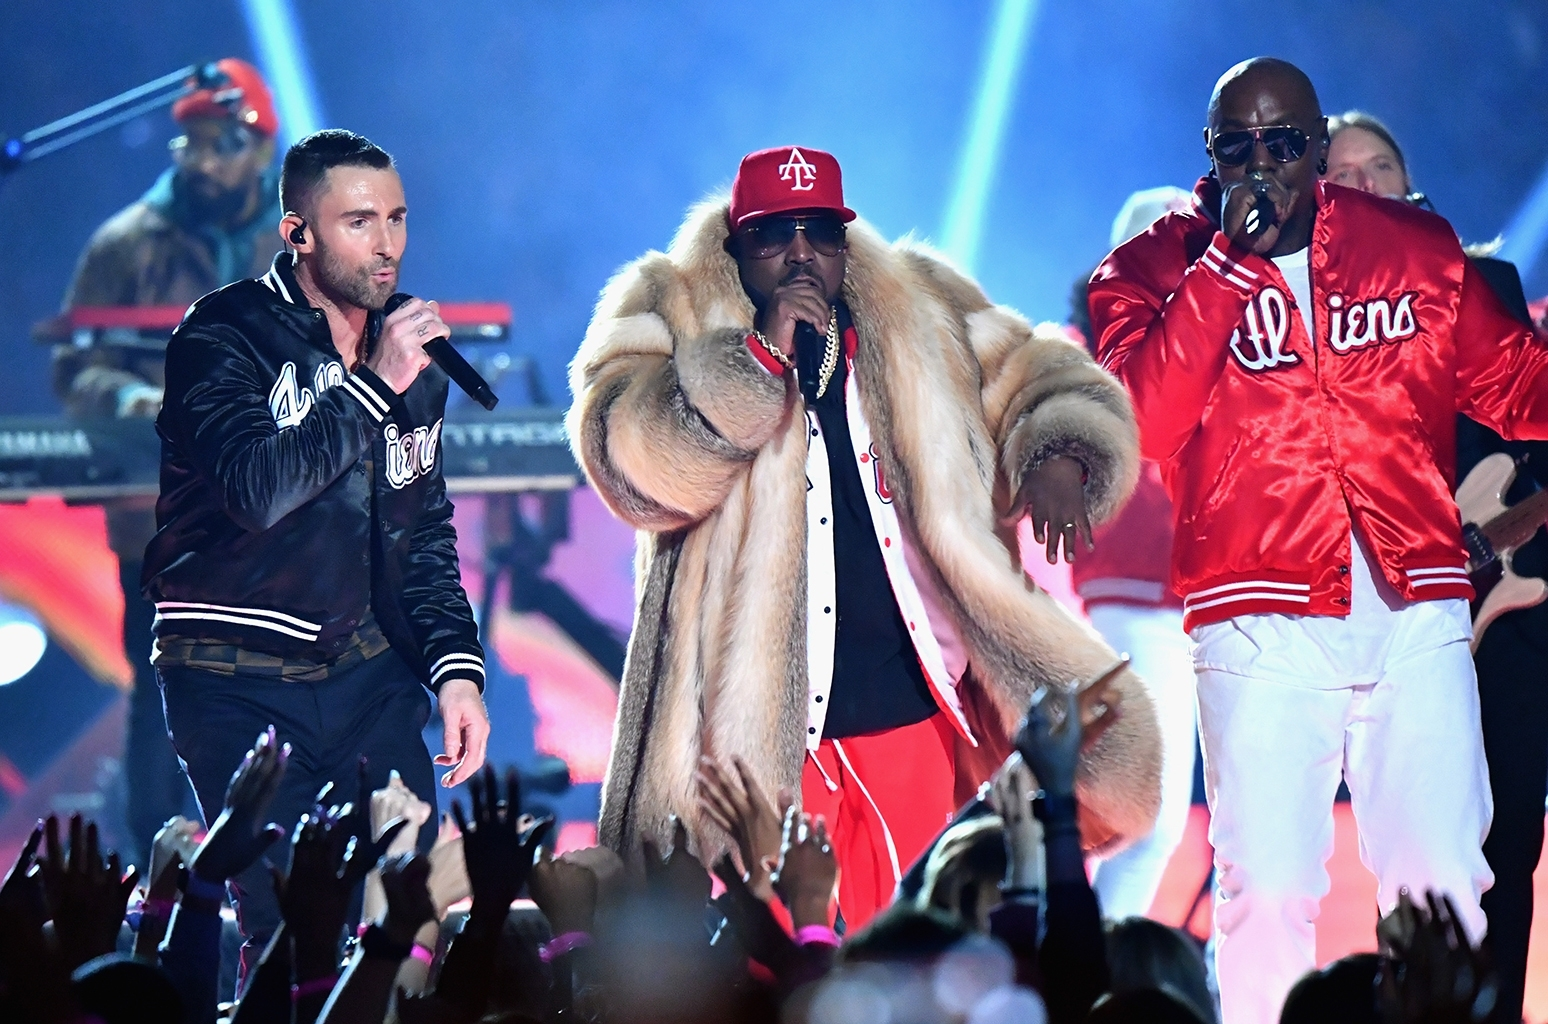 Peta Wants Big Boi To Donate His Super Bowl Fur Coat | Billboard regarding Big Boi Super Bowl